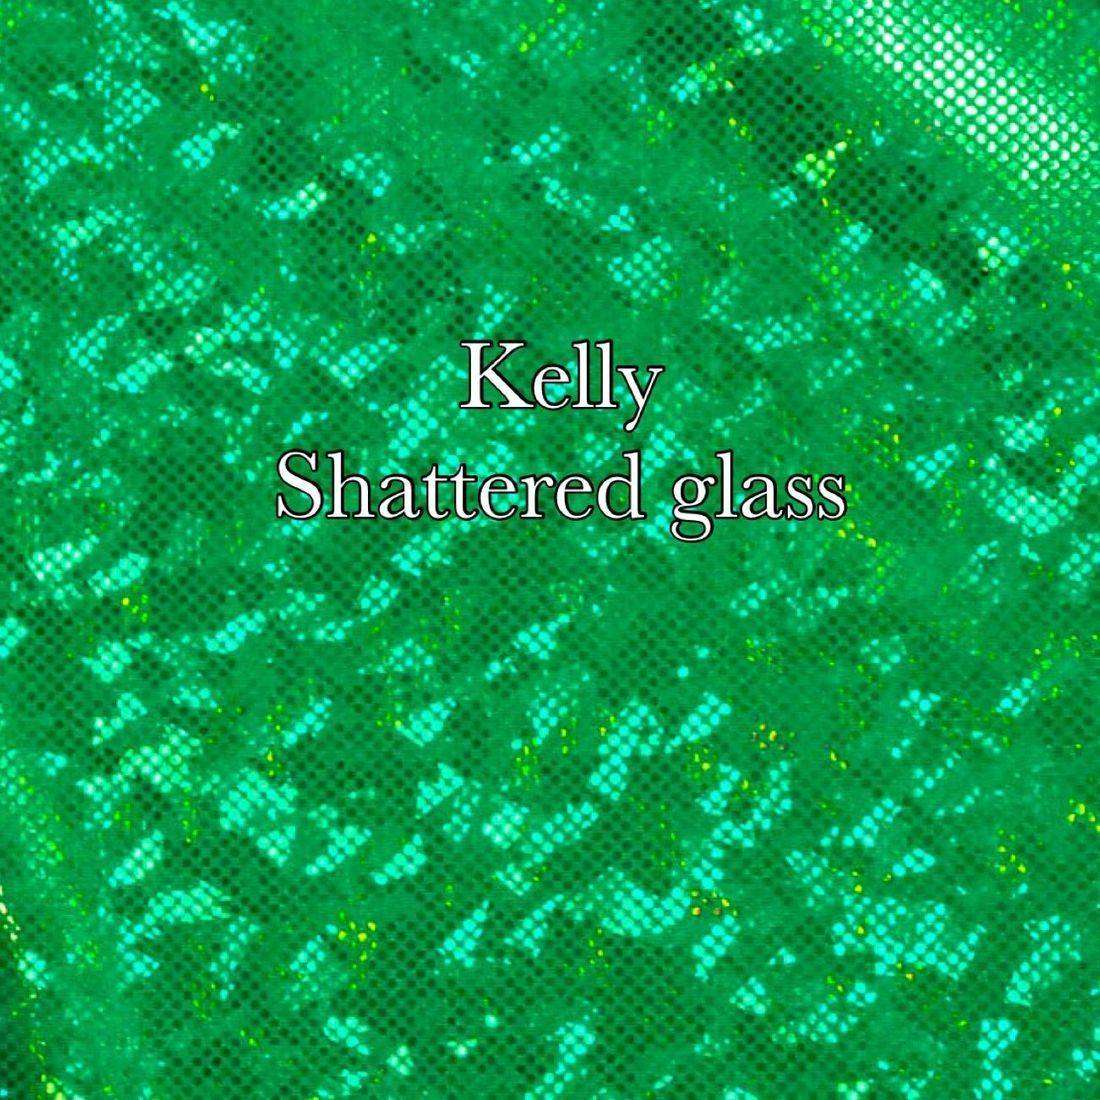 Kelly shatter glass